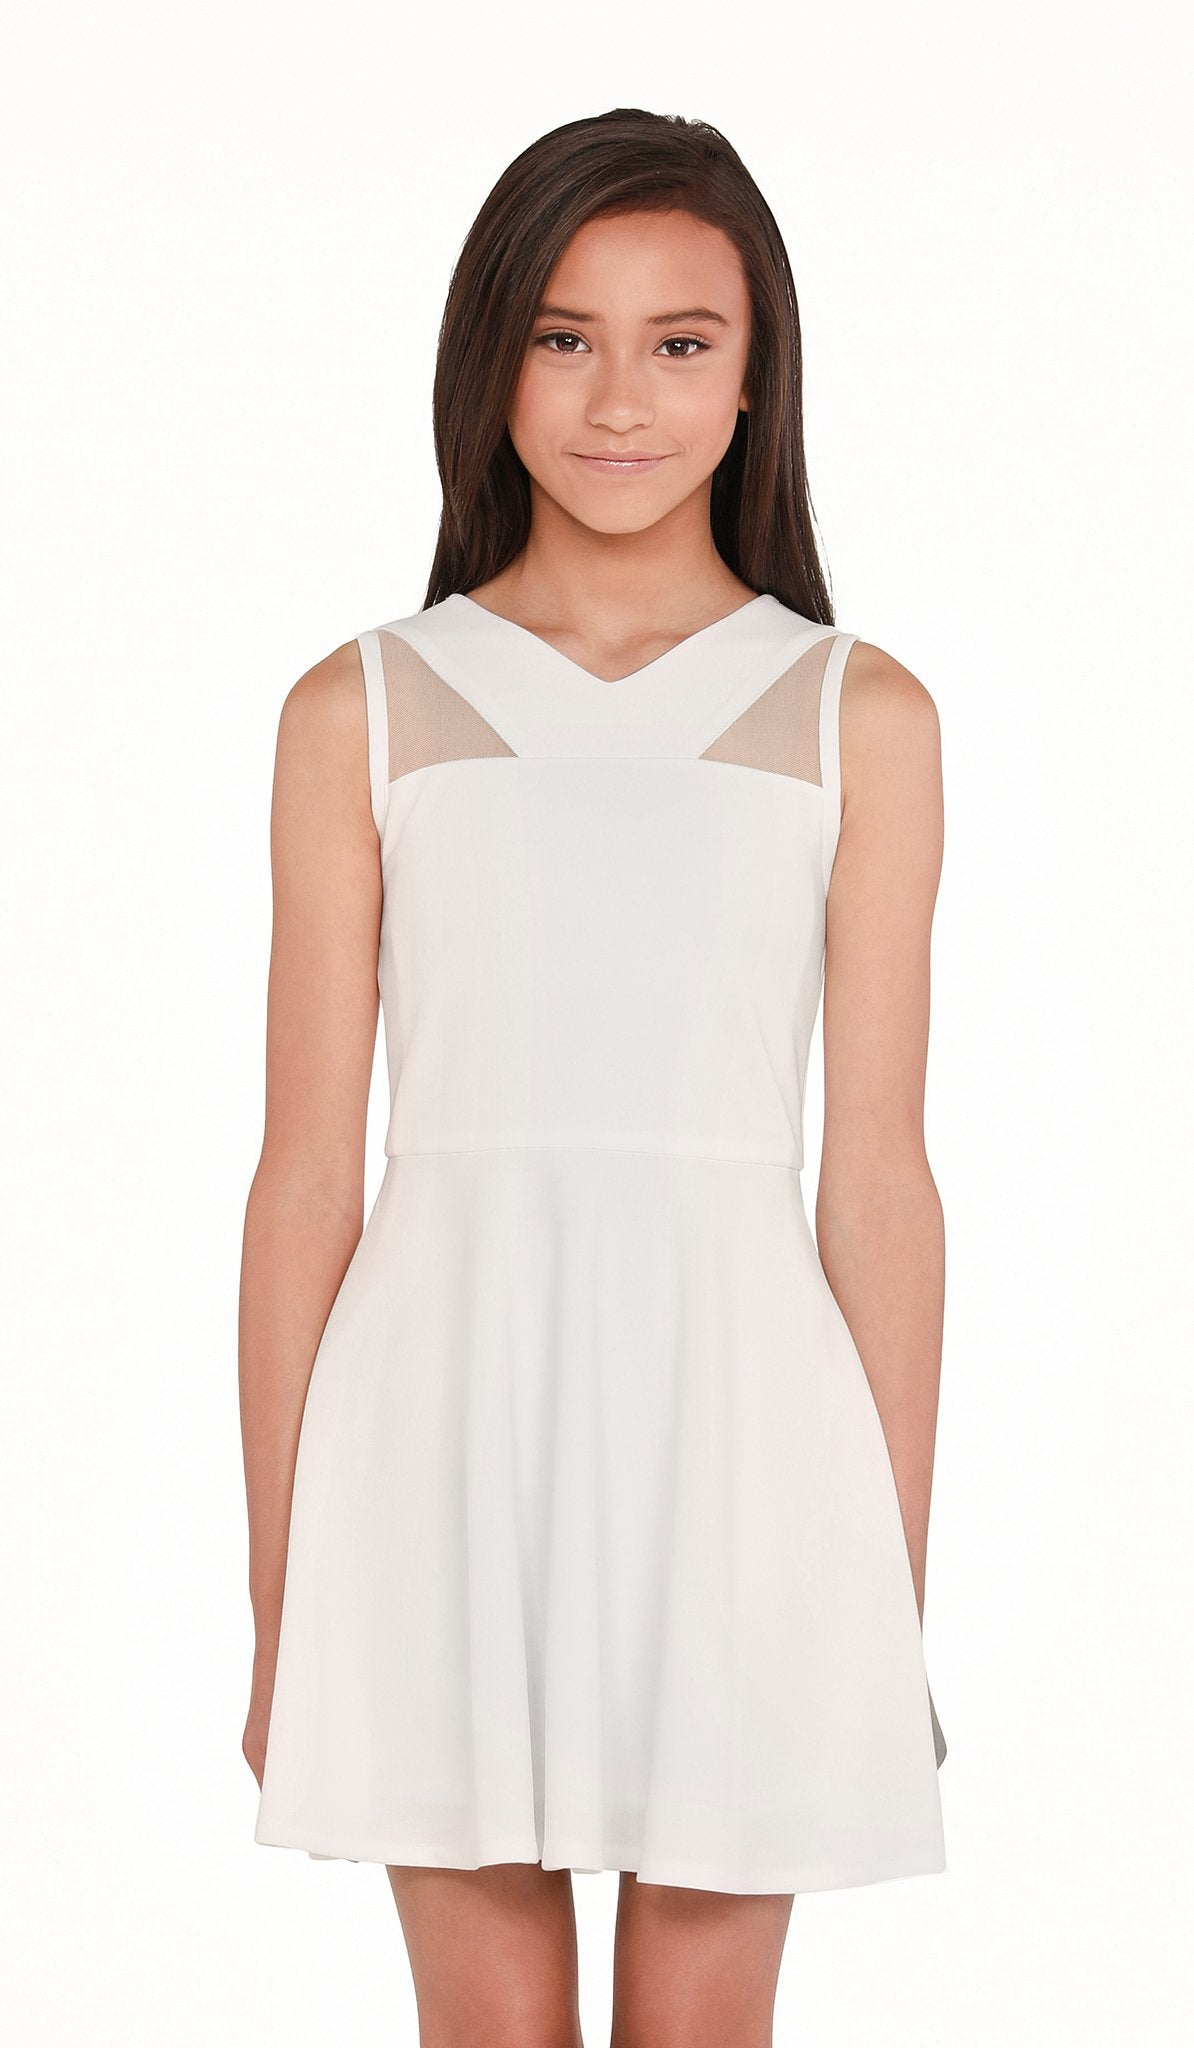 The Sally Miller Jill Dress - Ivory stretch knit fit and flare V-neck dress with illusion neck yoke